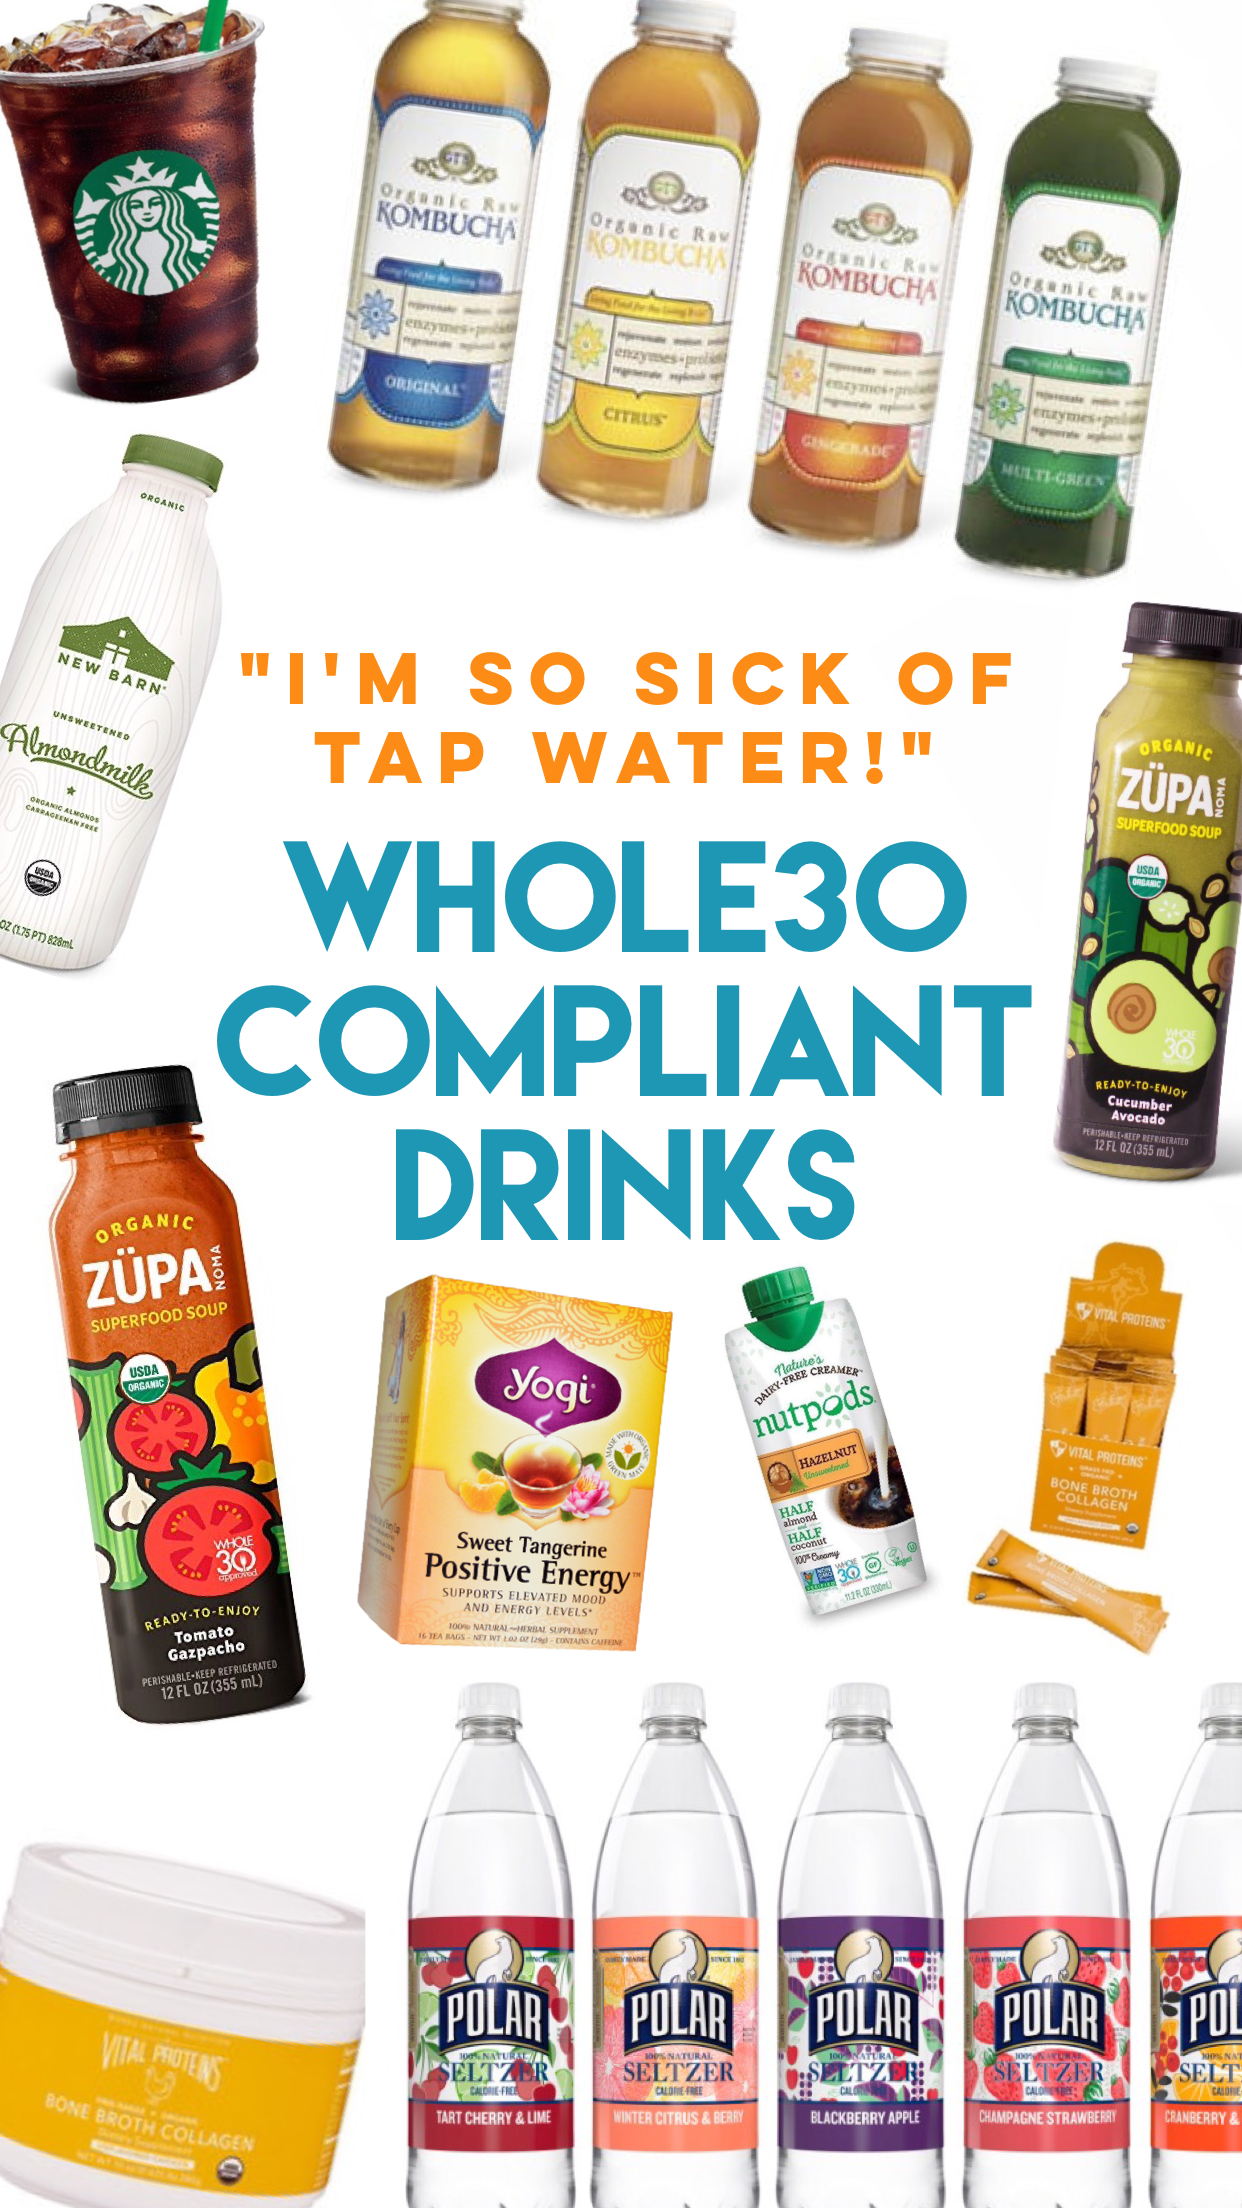 Whole30 compliant drinks